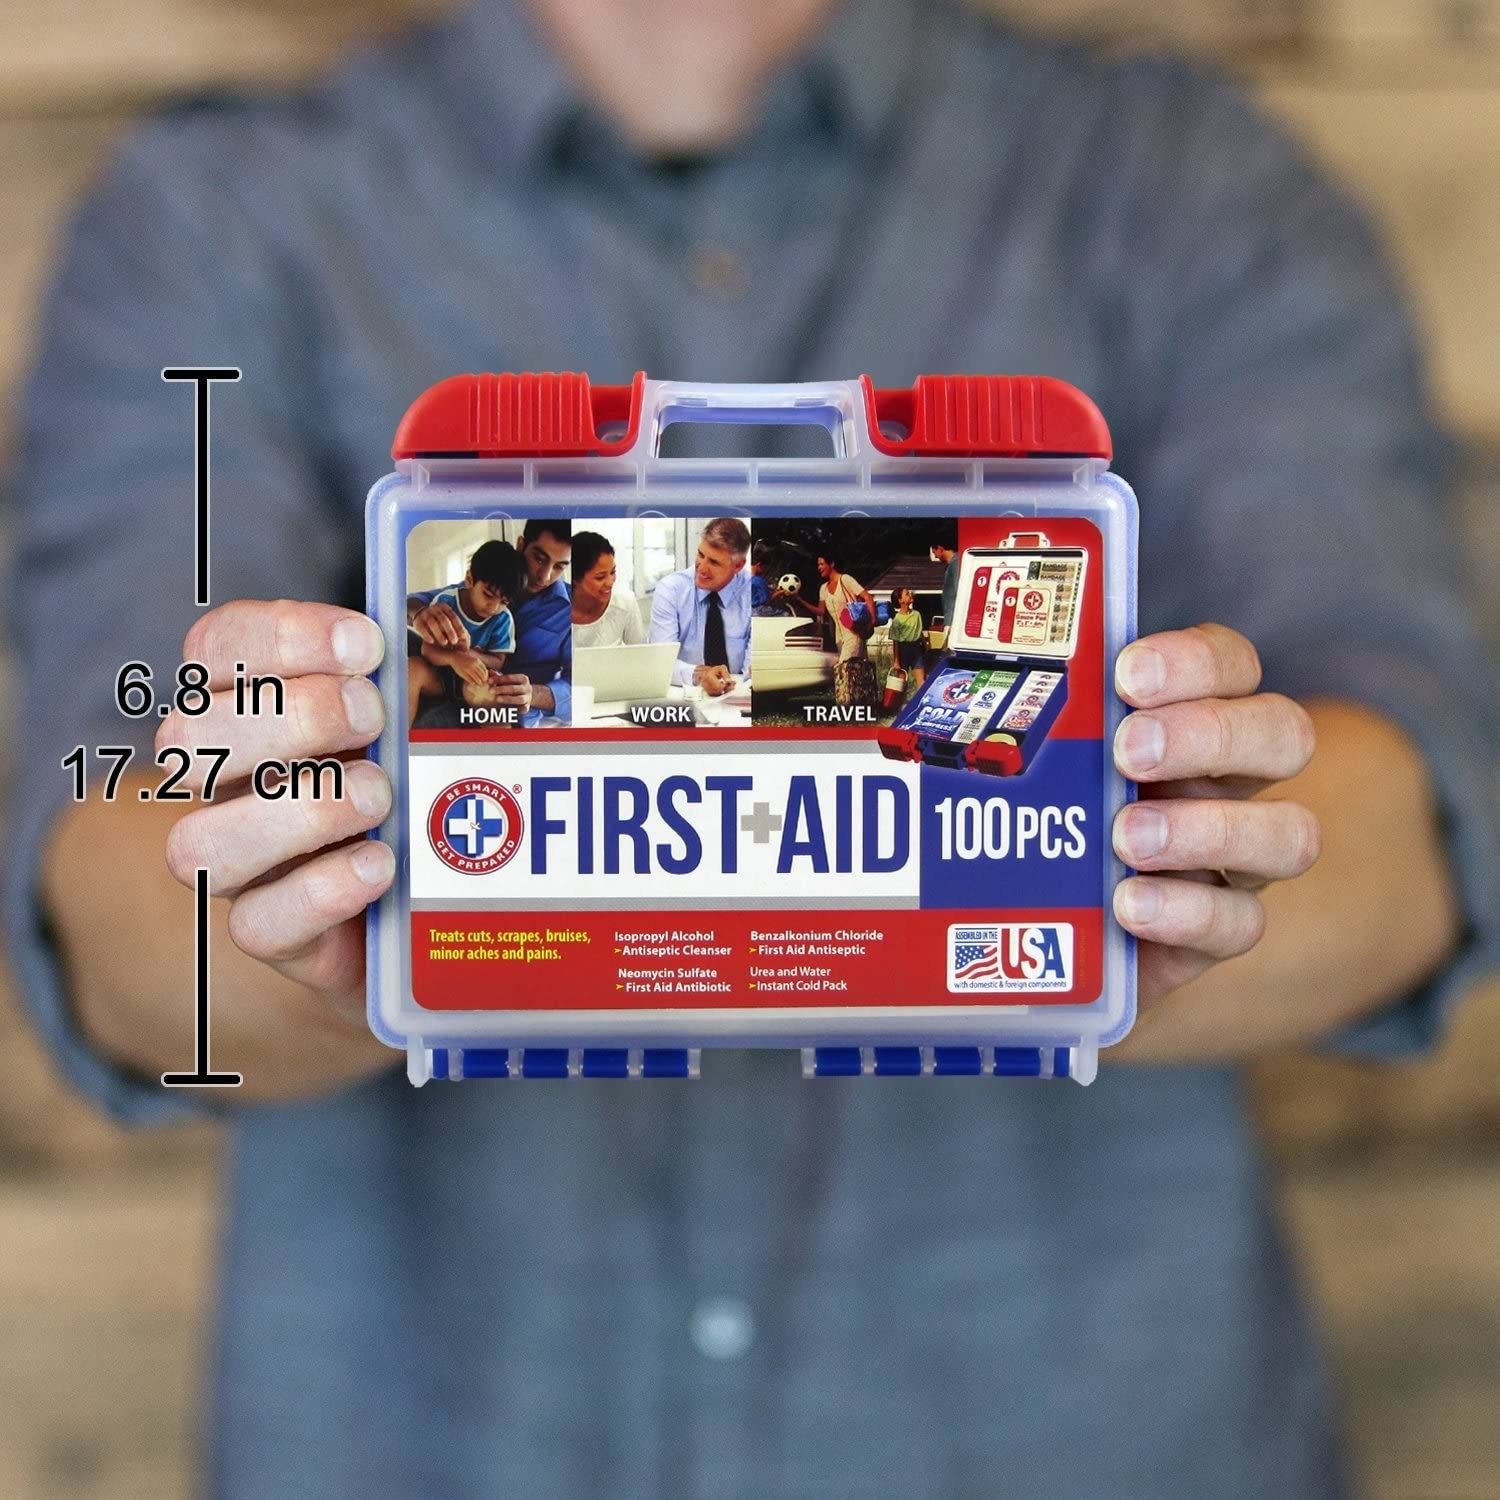 Model presenting First Aid kit in red, white, and blue plastic box